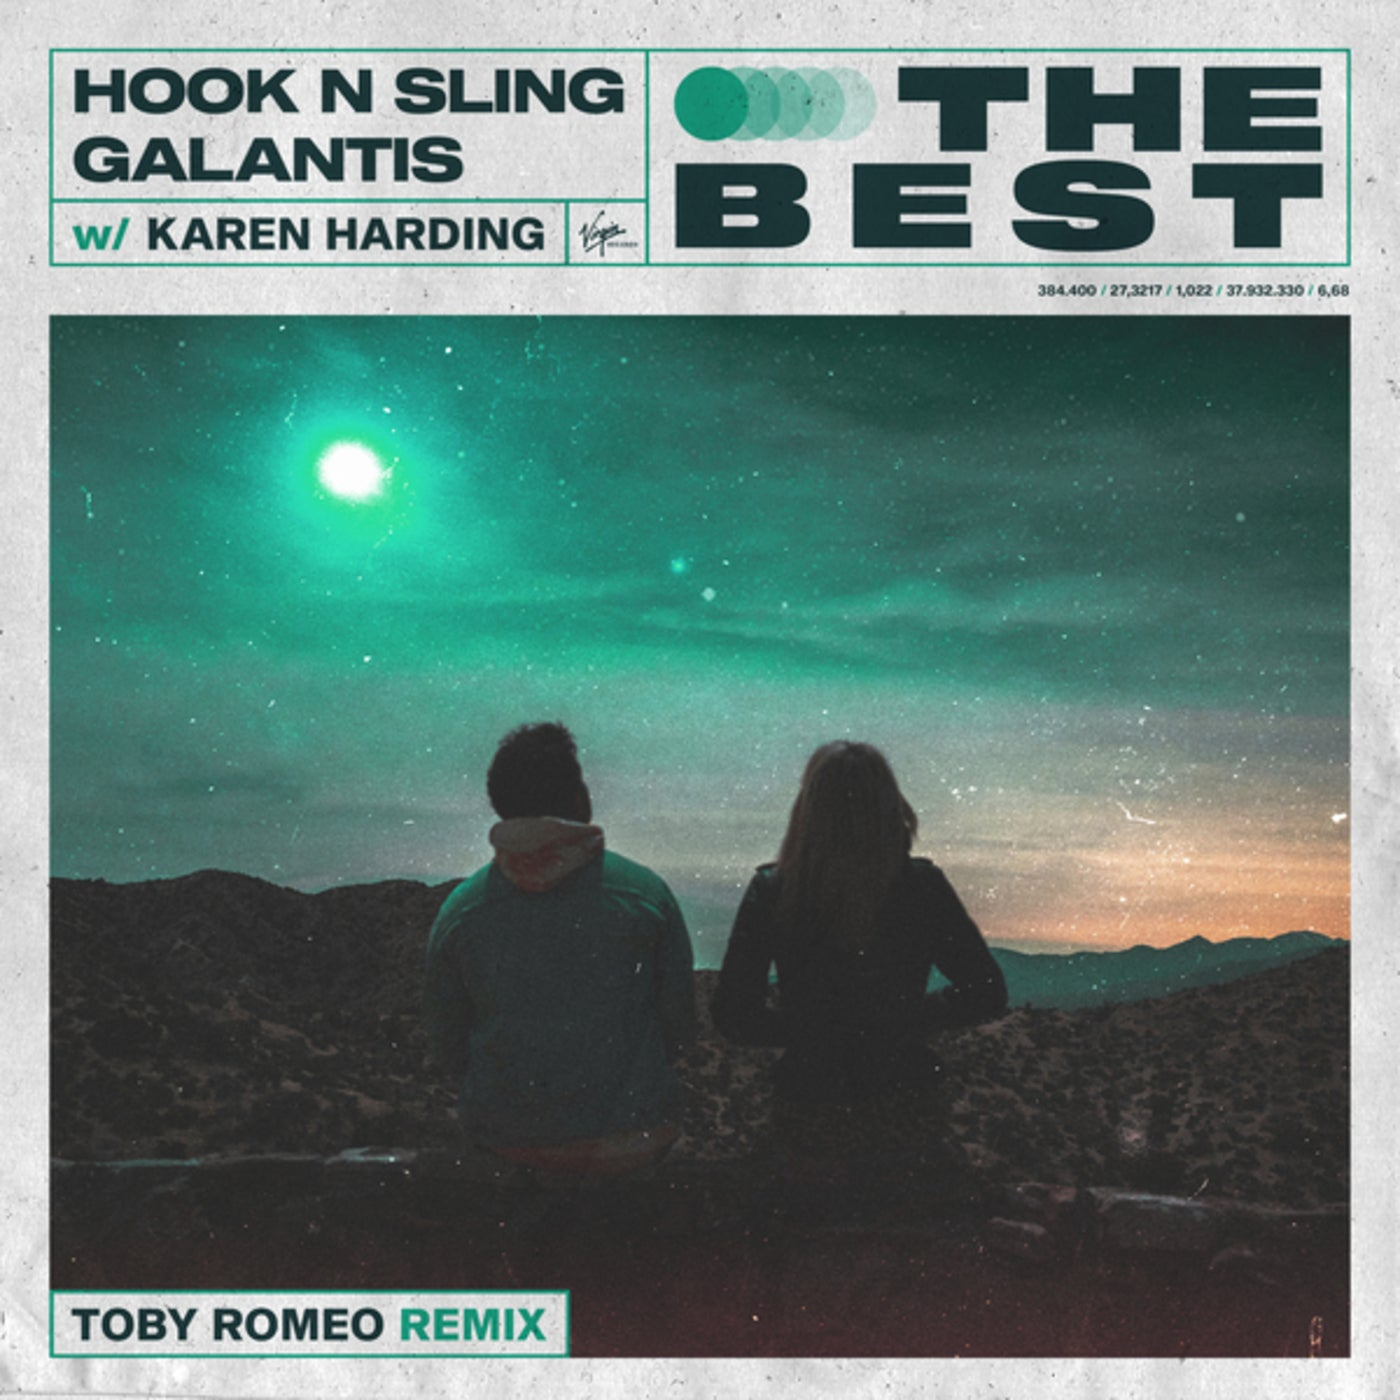 The Best (Toby Romeo Extended Remix)